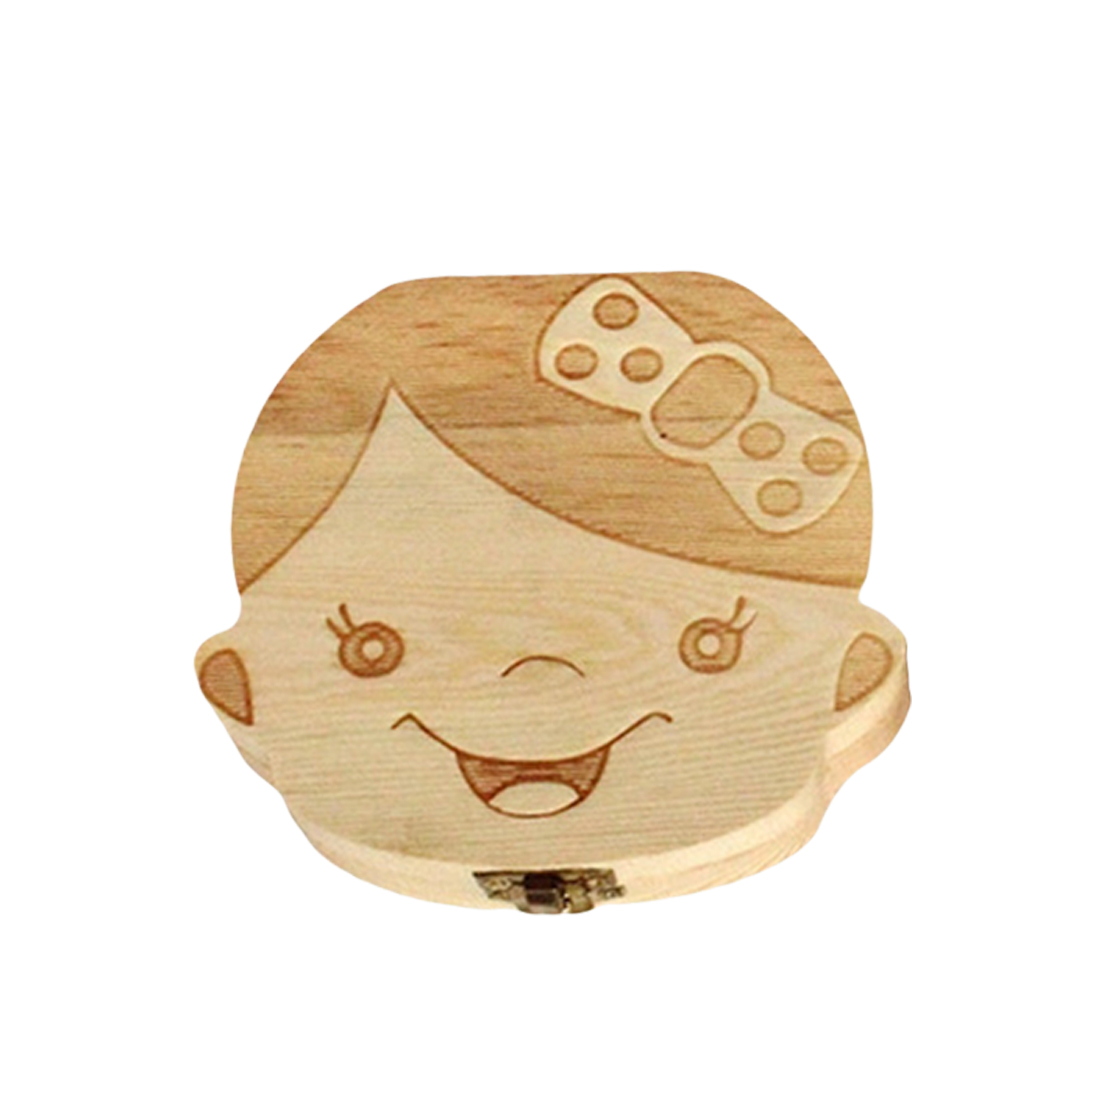 New English Wooden Baby Tooth Box Organizer Milk Tooth Storage Box For Boy Girl Save Teeth Umbilical Cord